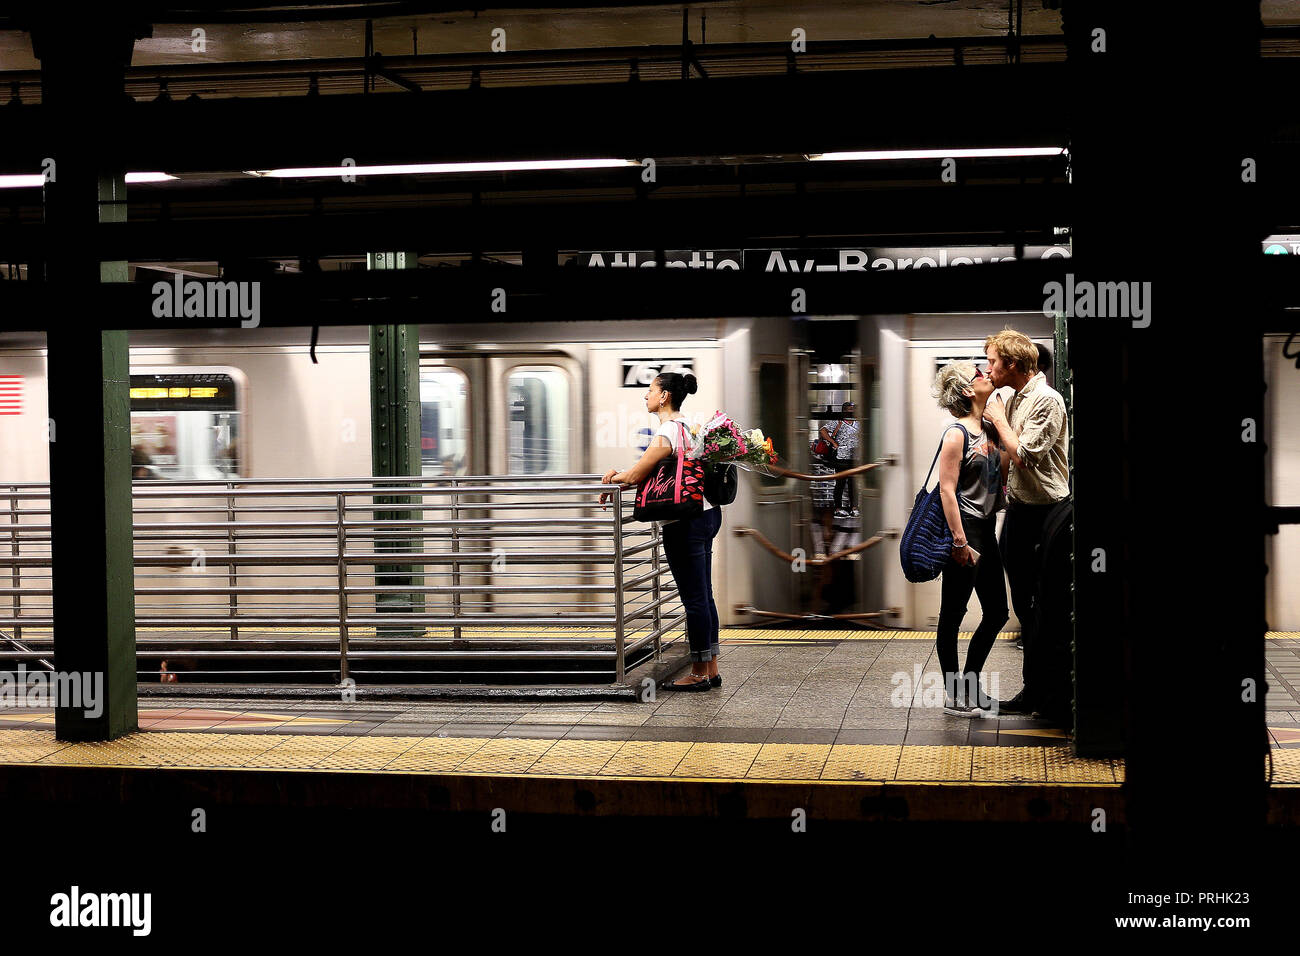 Brooklyn, New York - June 28, 2018: Unidentified couple kissing each other in a Brooklyn station in New York, Usa - Stock Image